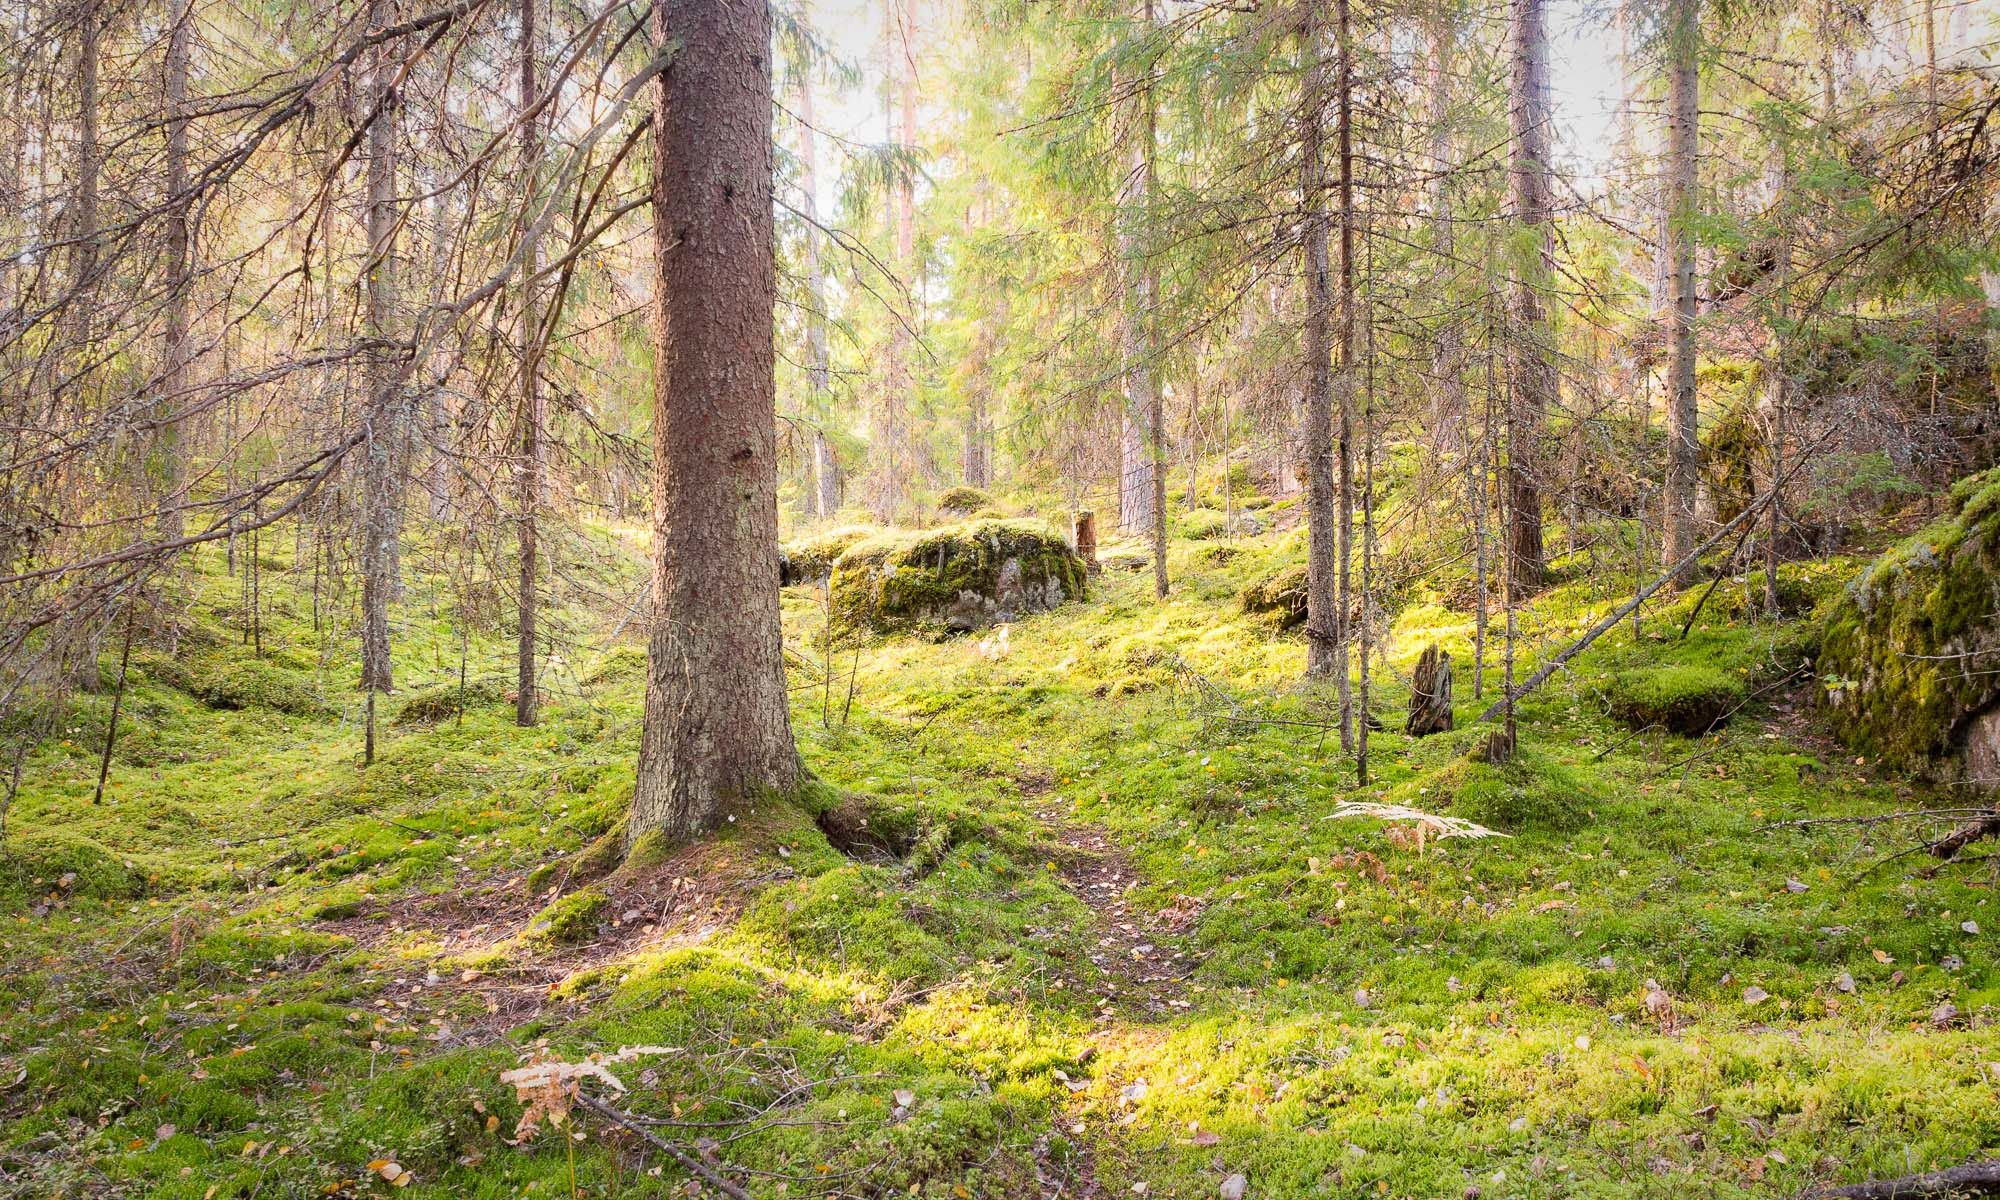 Nuuksio National Park in fall. Deep in Finnish forest searching for mushrooms. Nature near Helsinki, Finland.